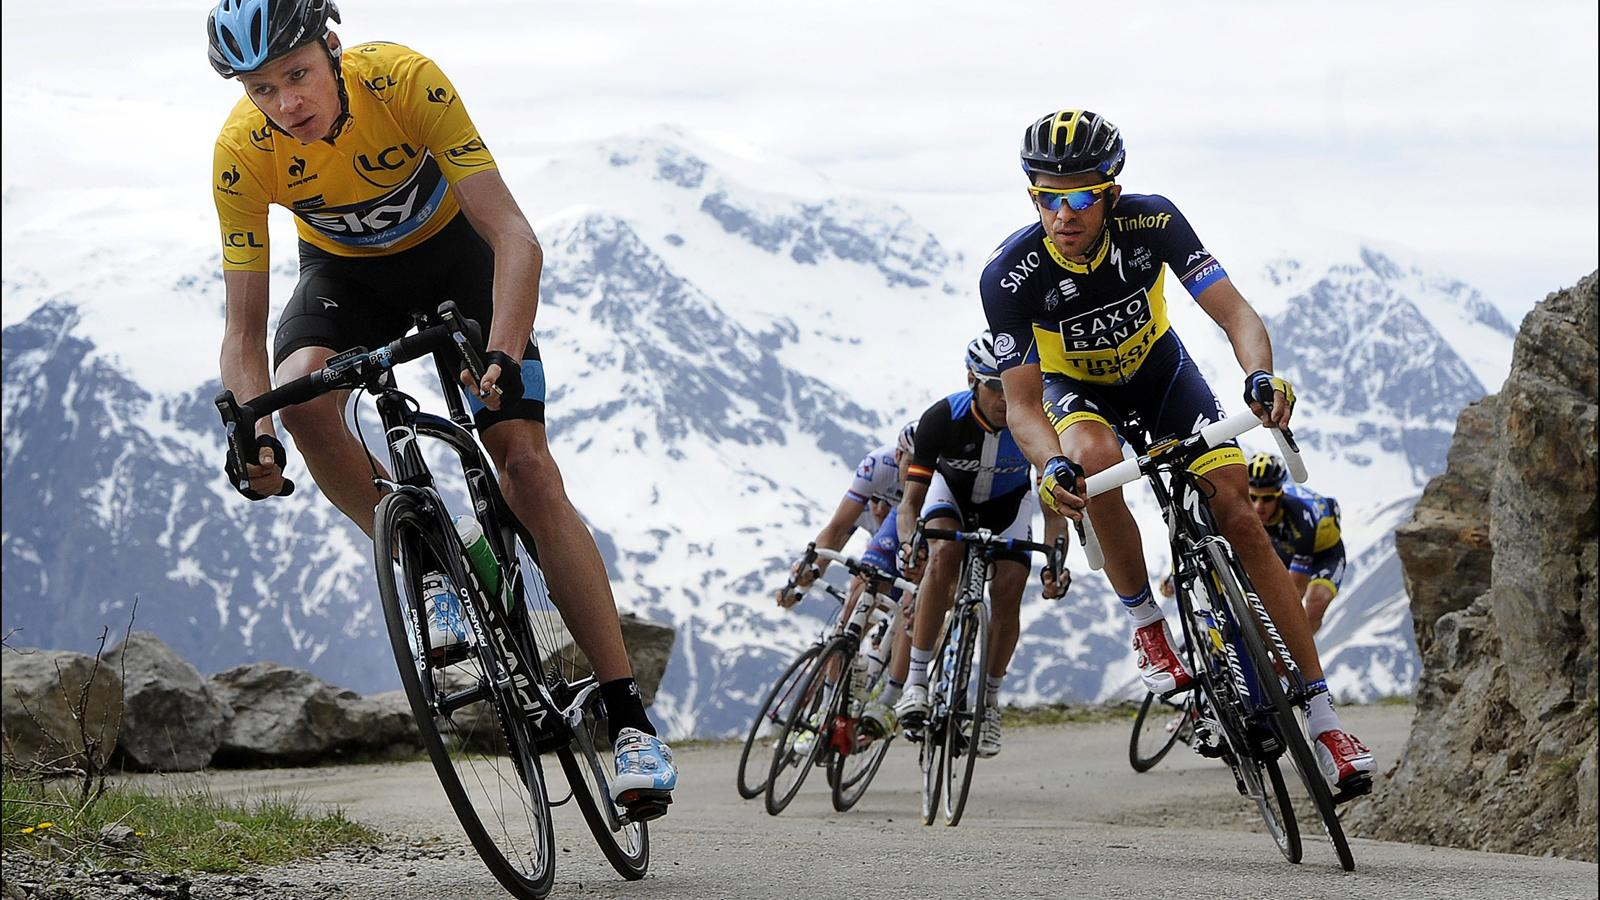 Froome and Contador in the Giro